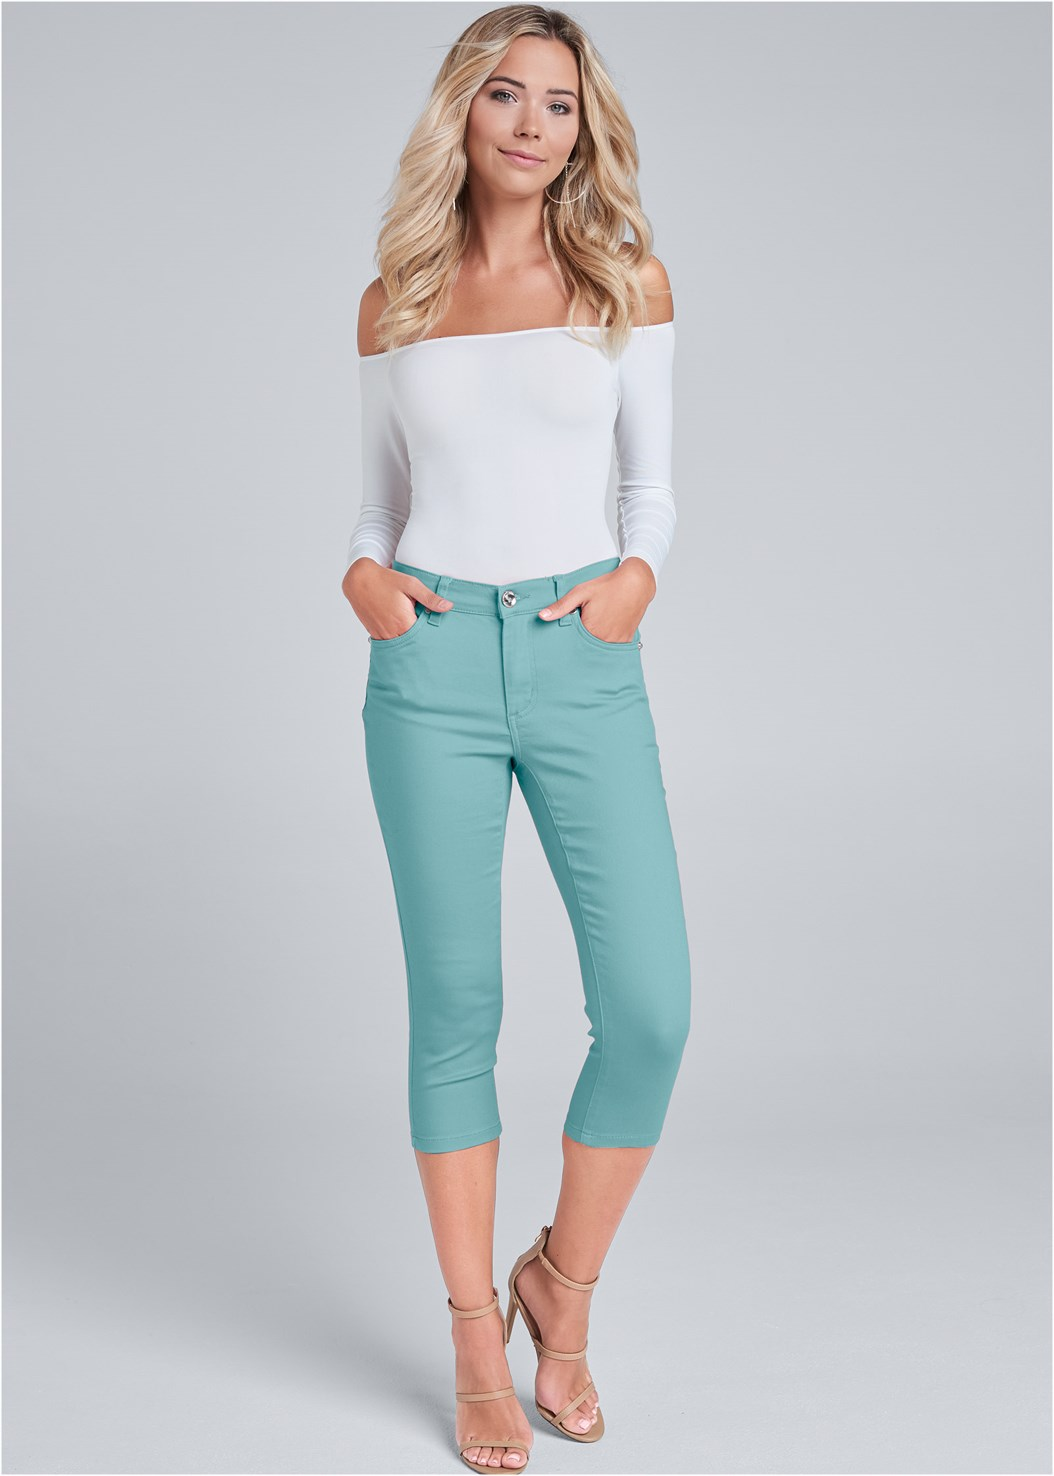 Color Capri Jeans,Back Detail Top,Statement Earrings,Mid Rise Slimming Stretch Jeggings